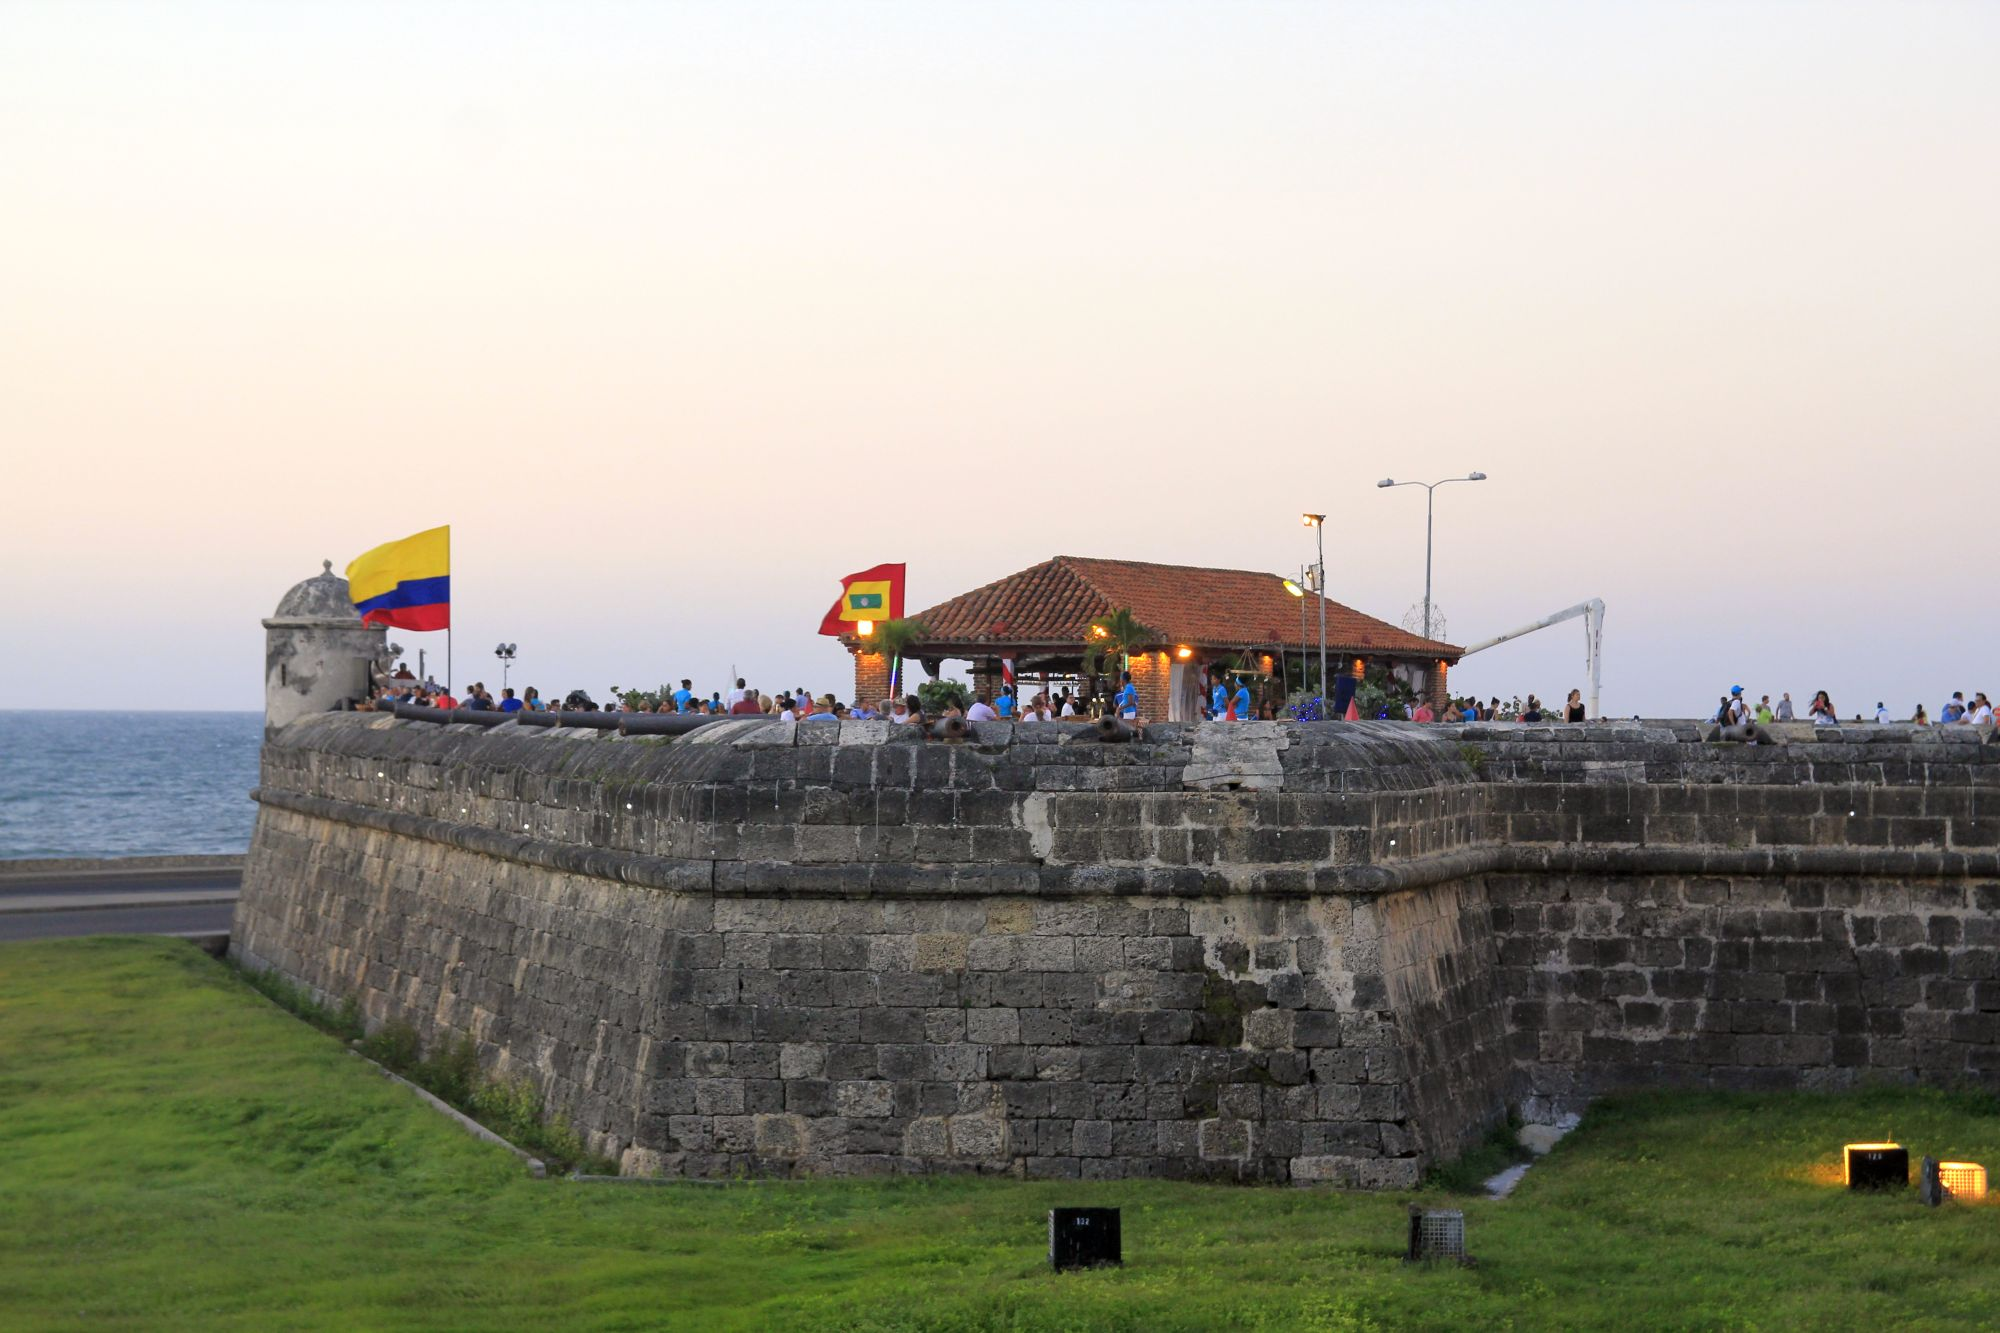 Cartagena, Columbien 2013